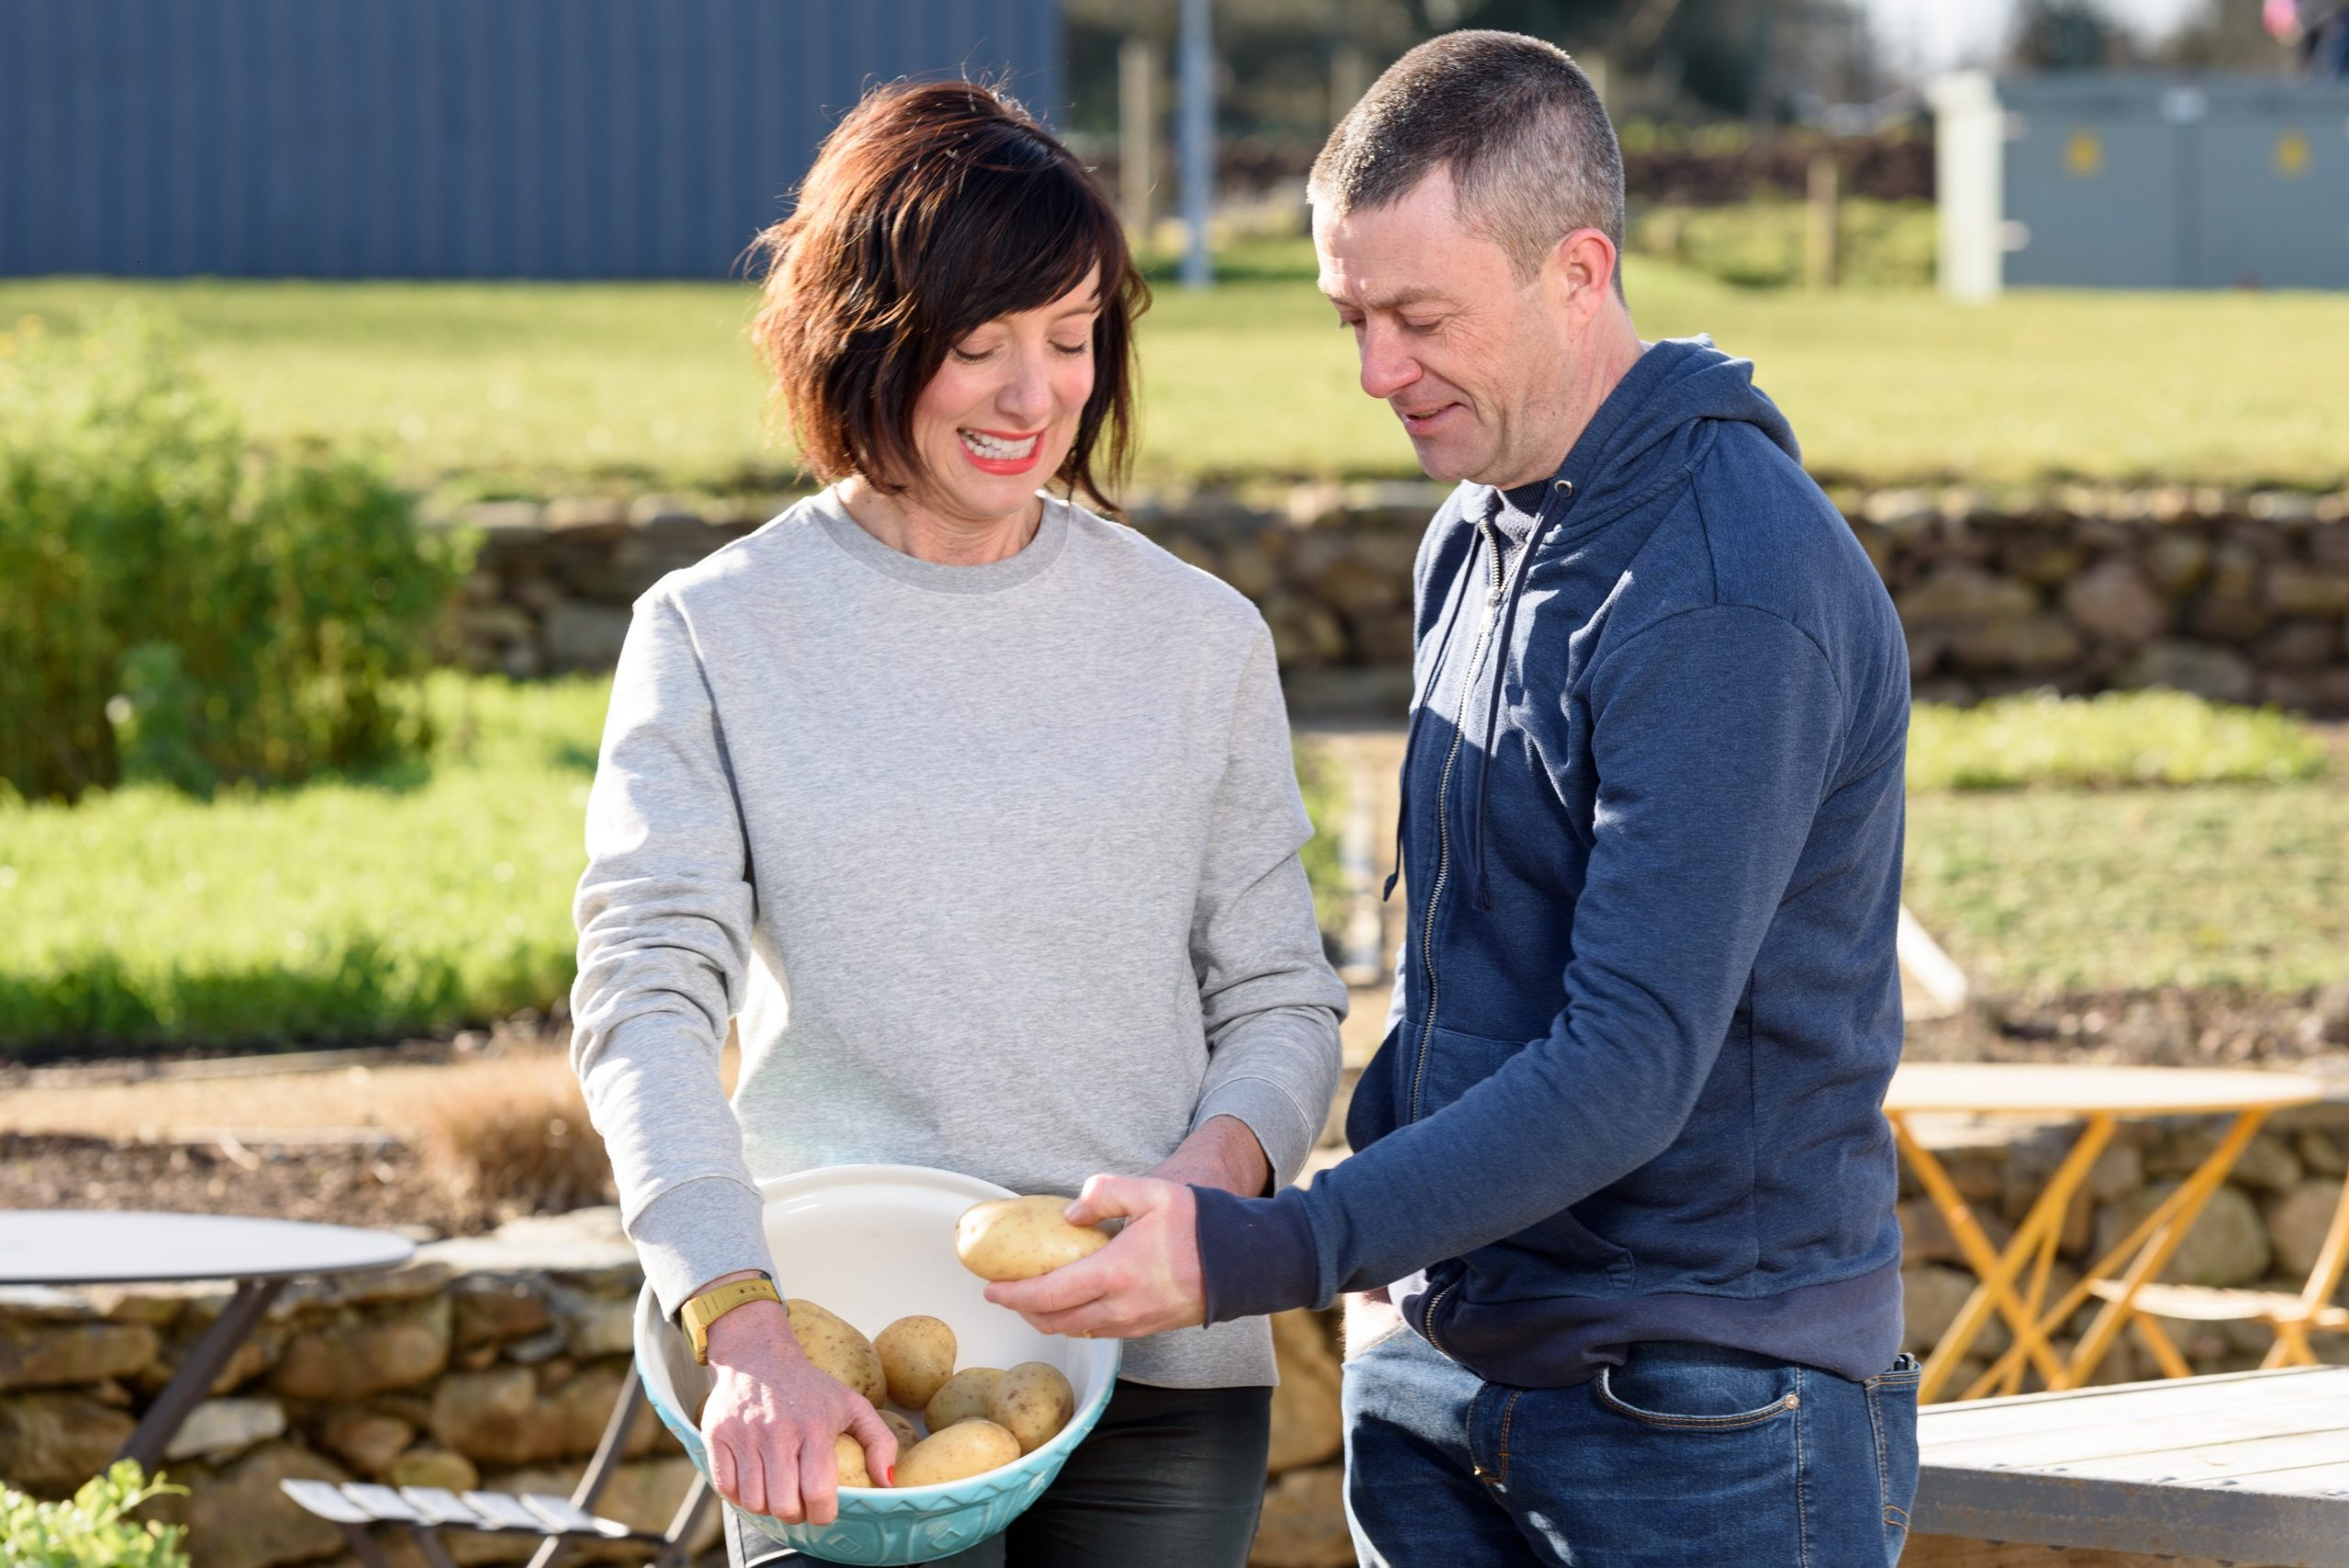 New RTÉ series 'GROW COOK EAT' visits Grantstown Nurseries in Waterford for next show